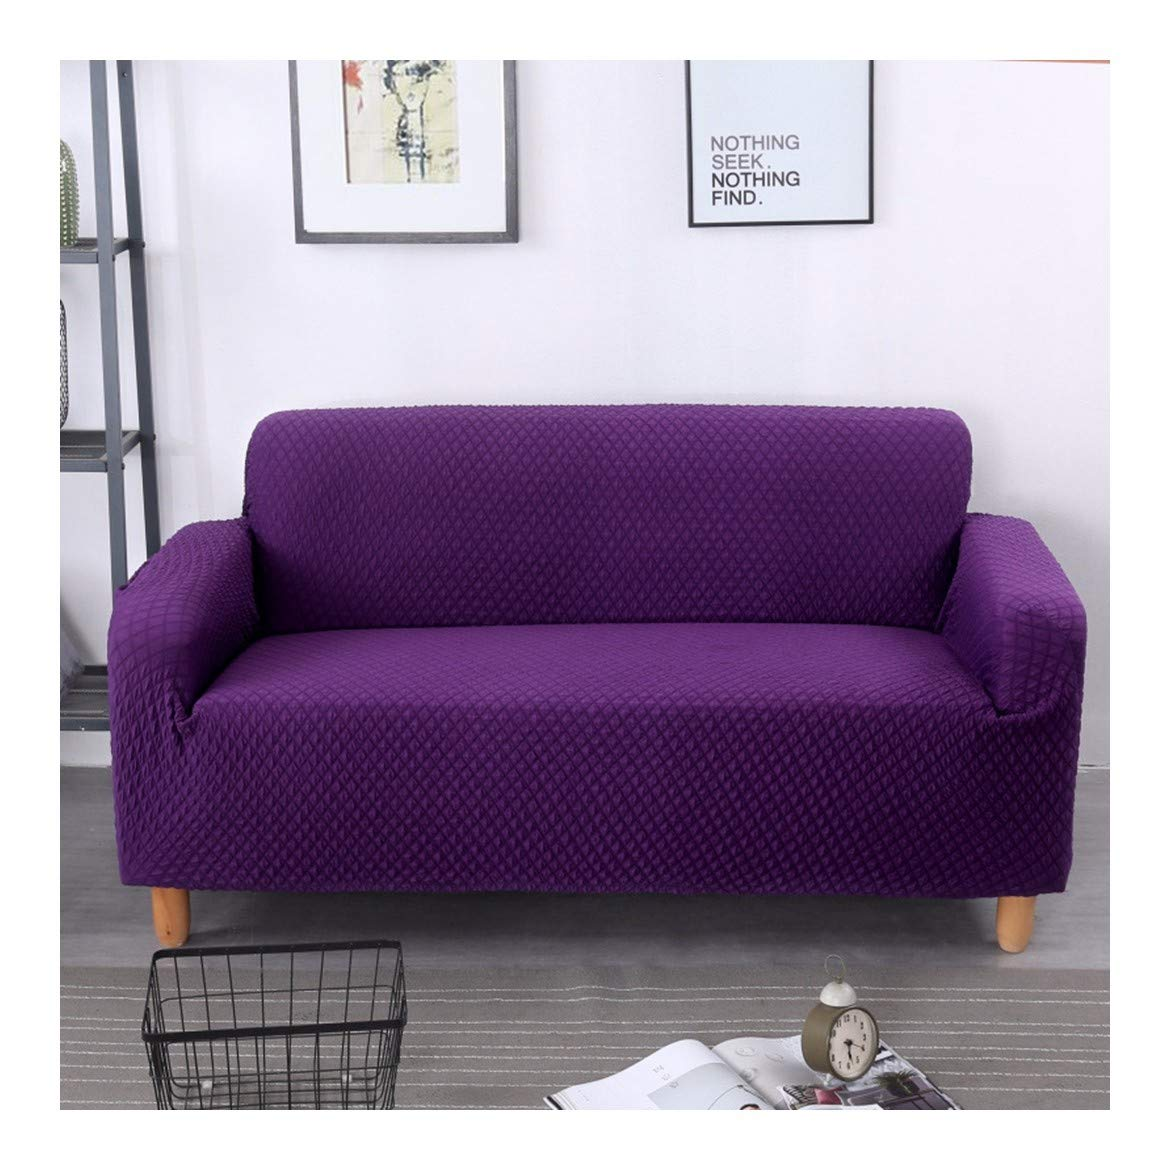 4seat VGUYFUYH Purple Skid-Proof Knitted Square Sofa Cover Polyester Full Package Elasticity Home Universal Sofa Cover Simple Fashion One Set Durable Dustproof Pet Dog Predective Cover,4Seat